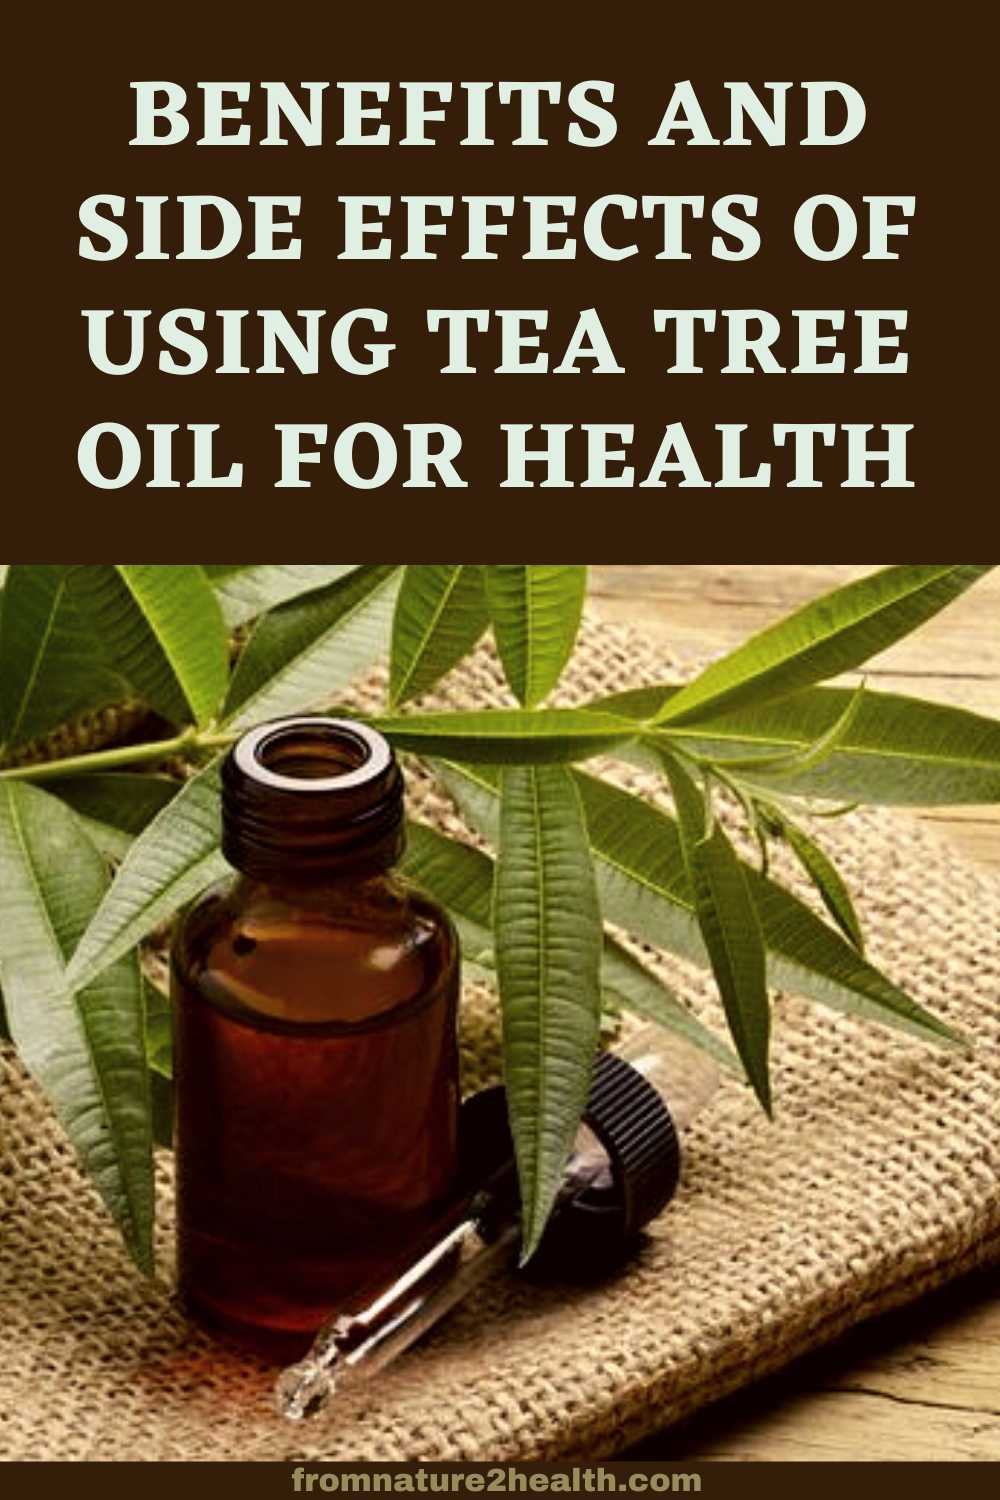 Benefits and Side Effects of Using Tea Tree Oil for Health